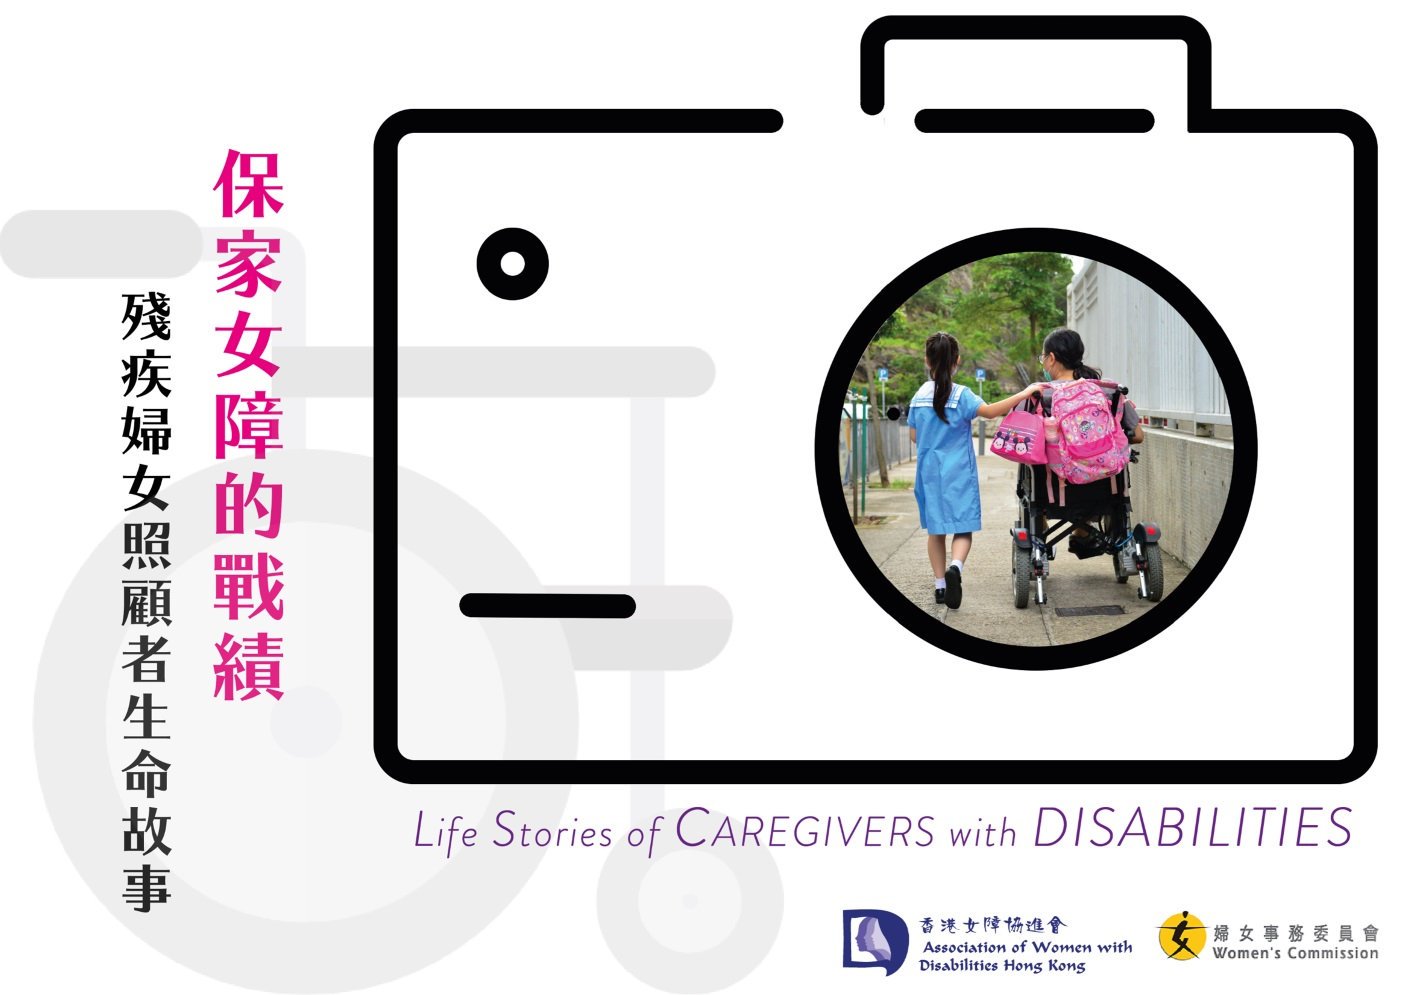 Life Stories of Caregivers with Disabilities